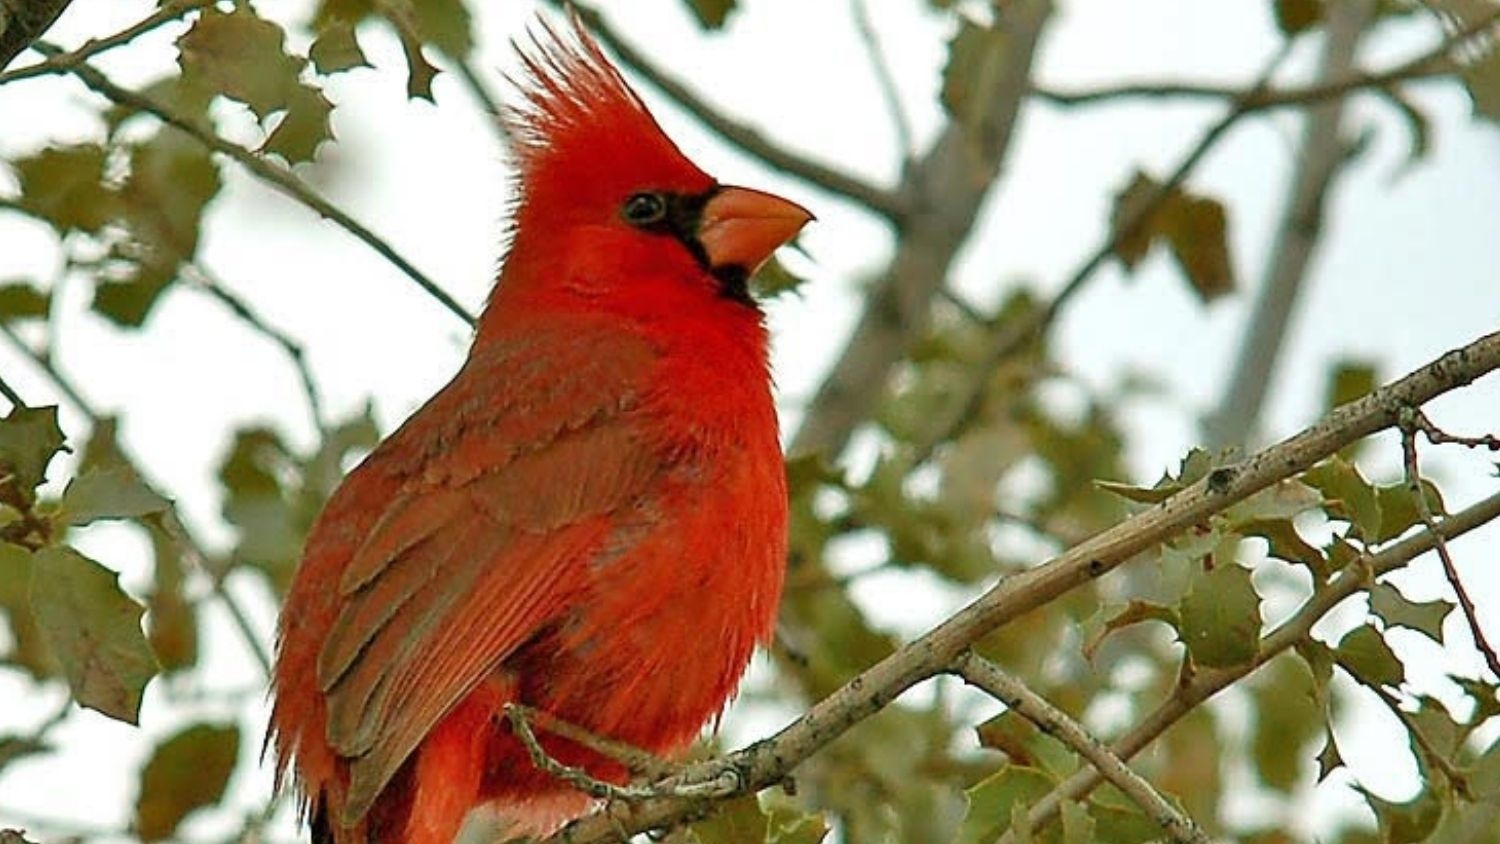 Cardinal - Noise and Light Pollution Impact Songbird Reproduction - Forestry and Environmental Resources NC State University